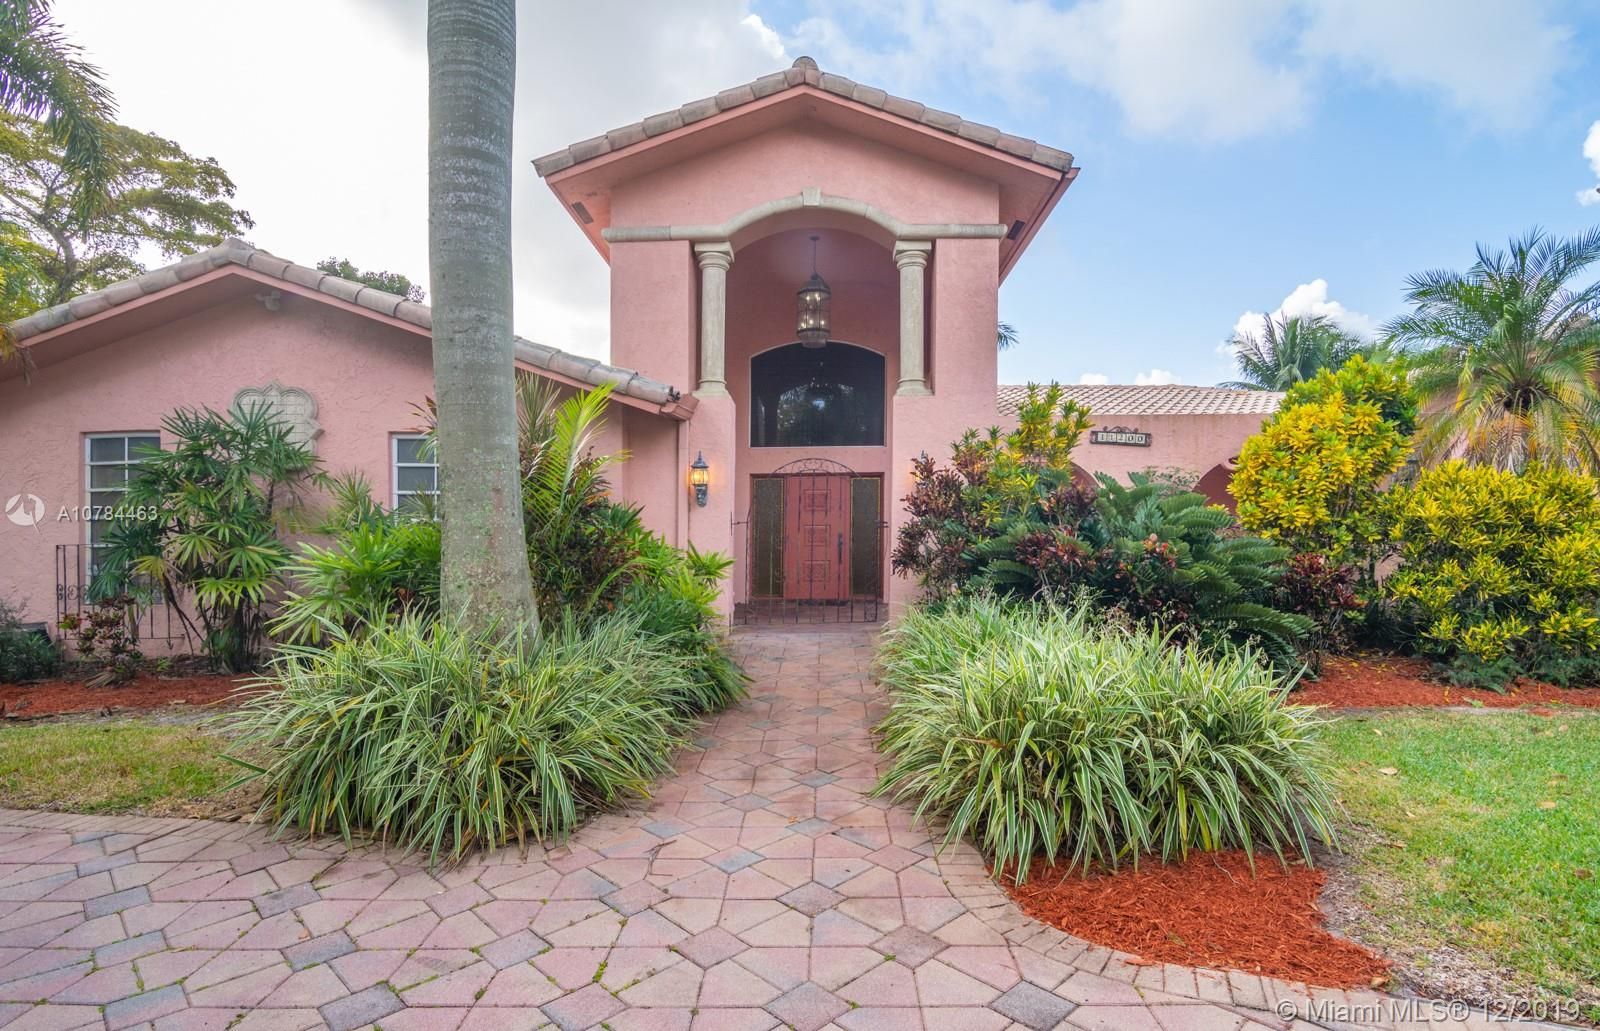 11200 NW 33rd St, Coral Springs, FL 33065